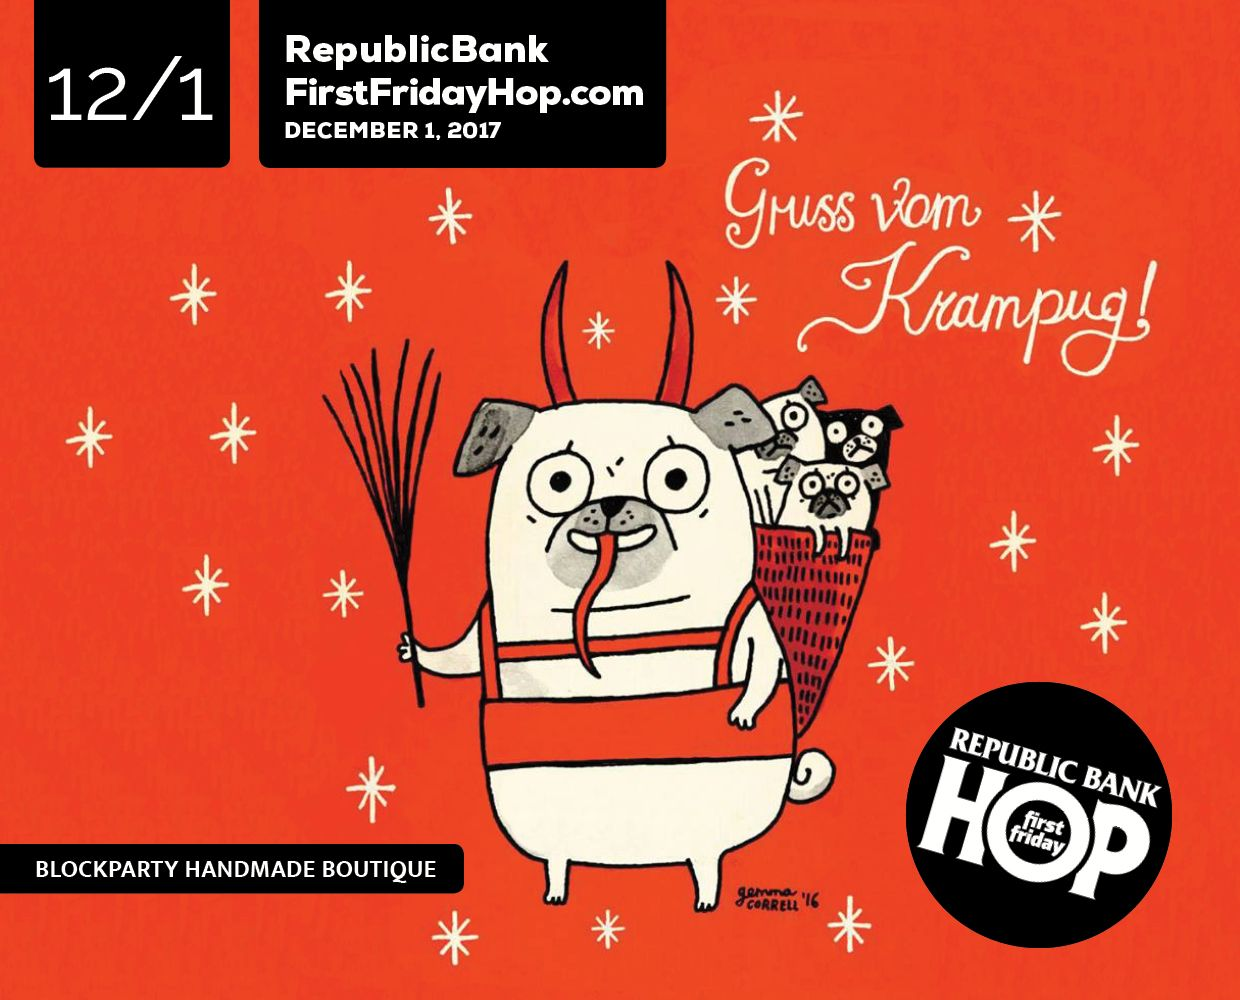 December 1 – Republic Bank First Friday Hop image